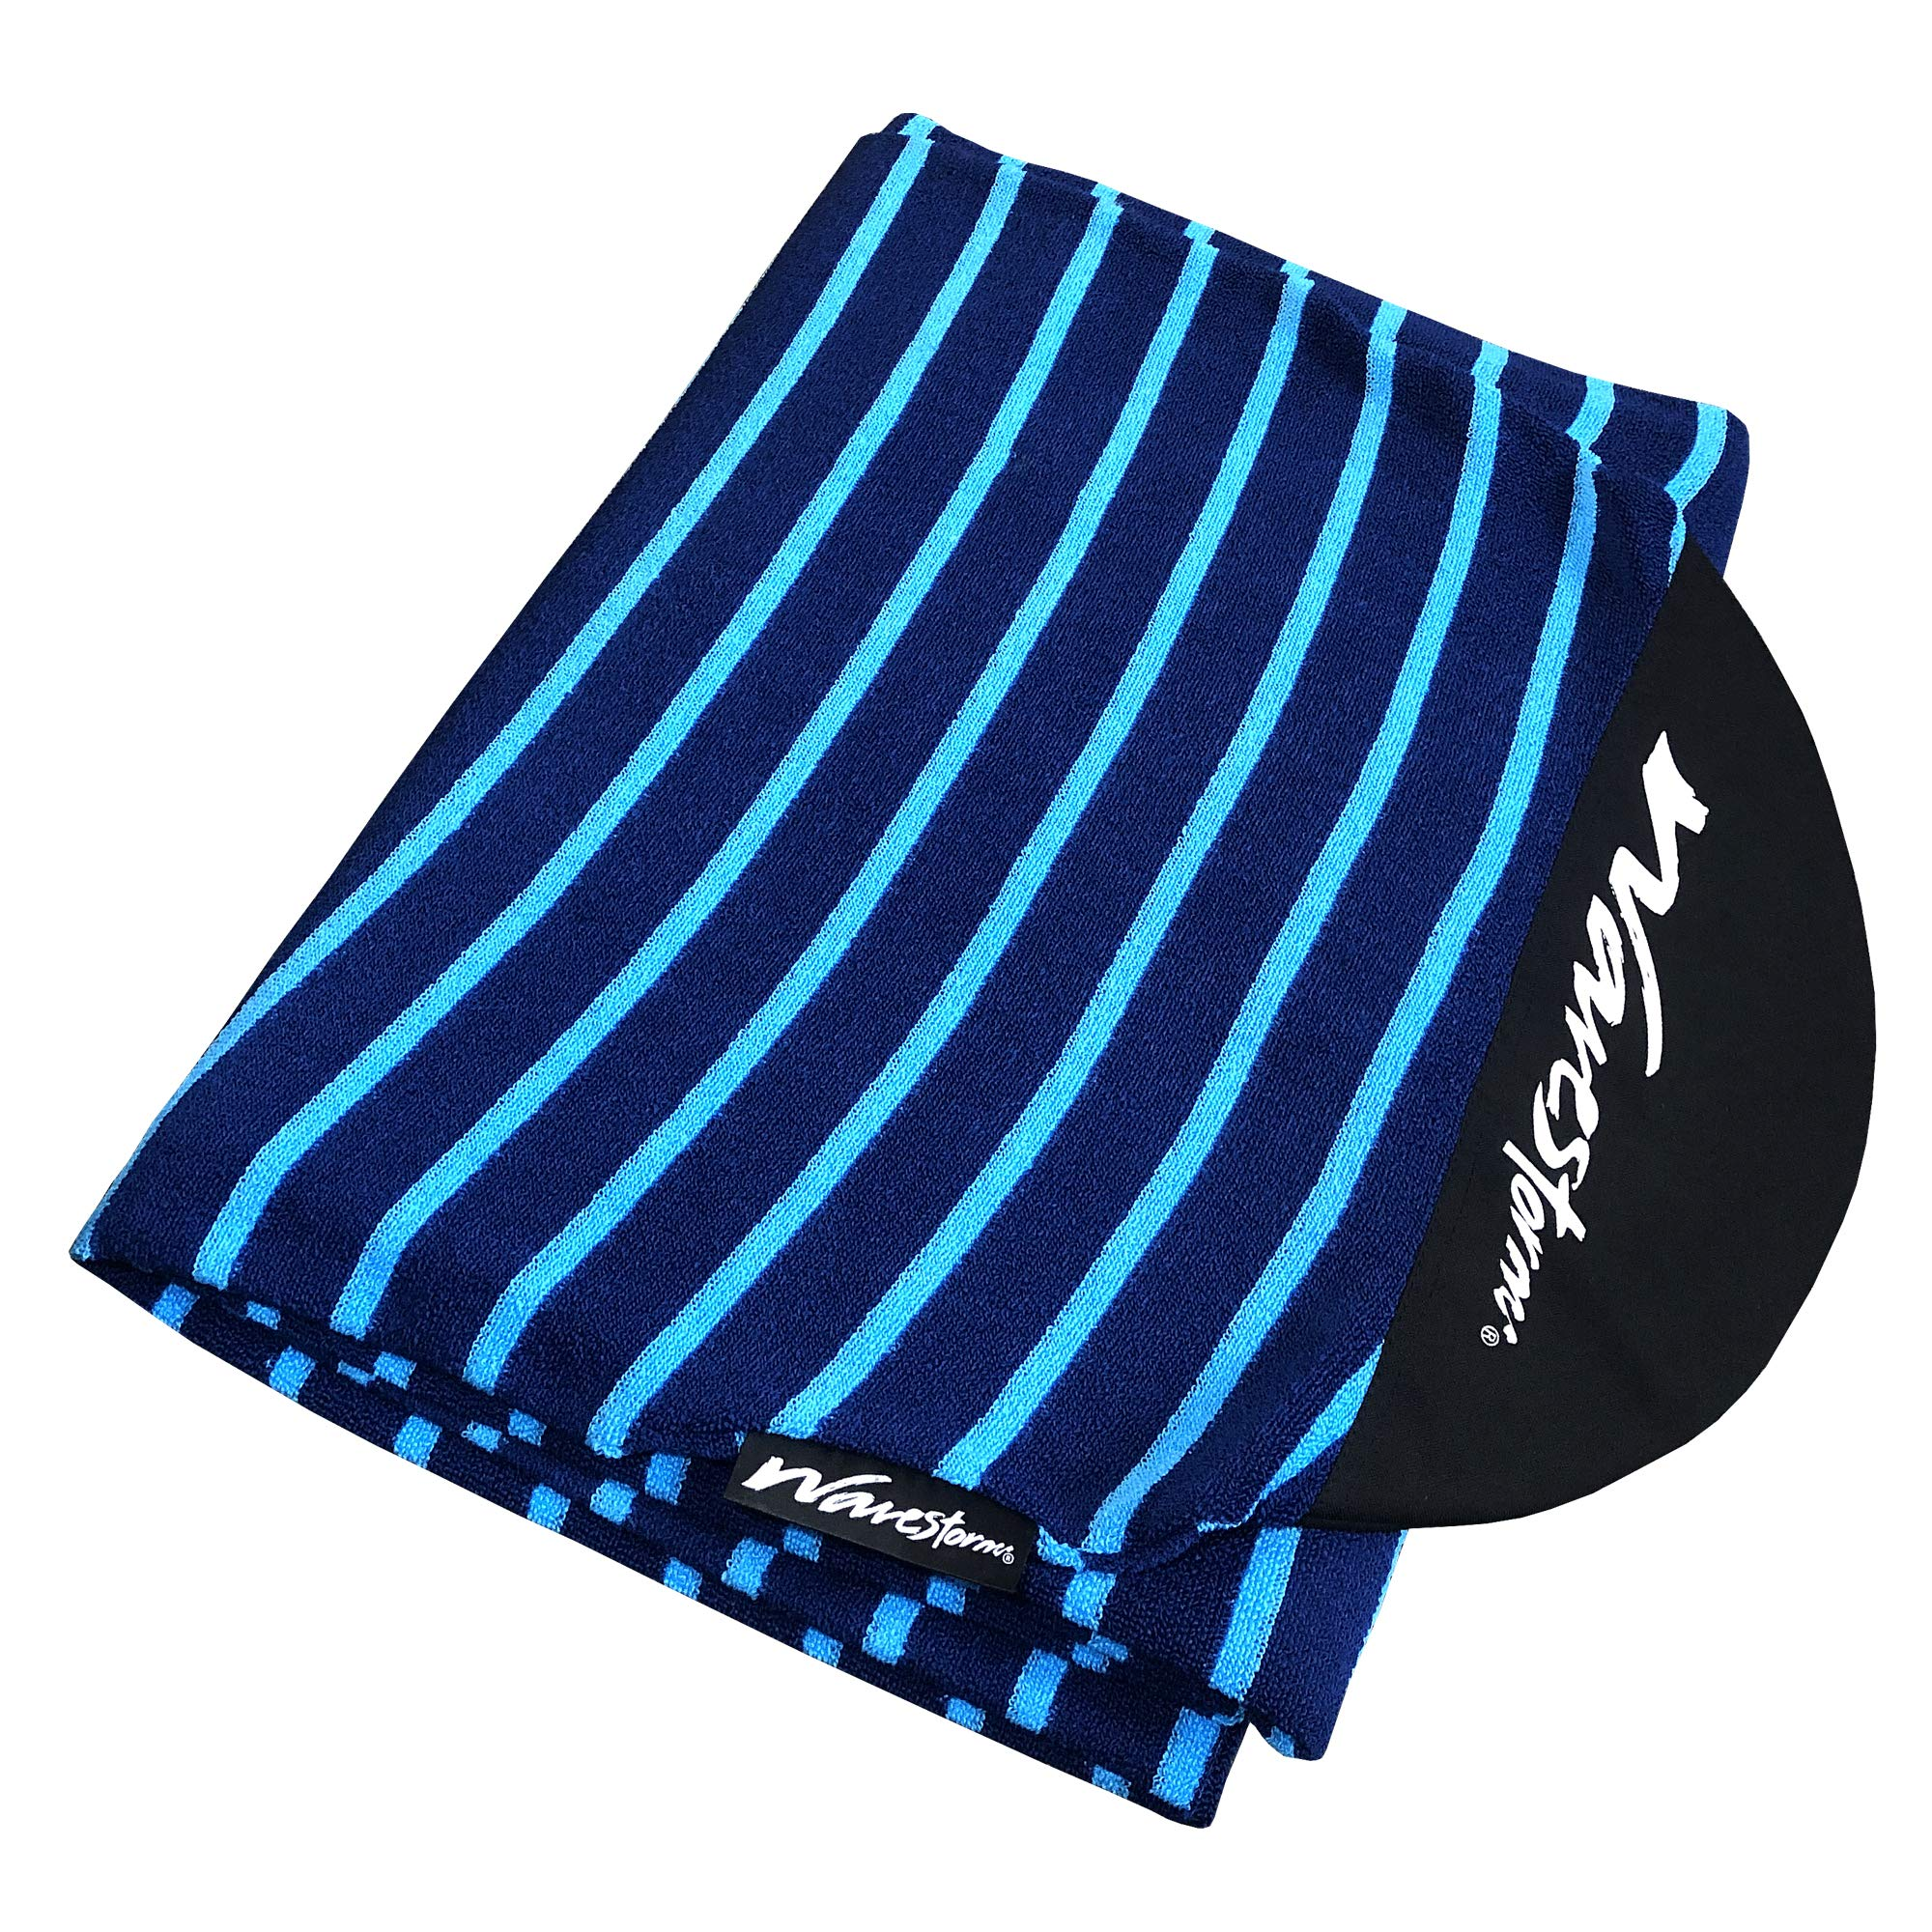 Wavestorm 8ft Surfboard Sock by Wavestorm